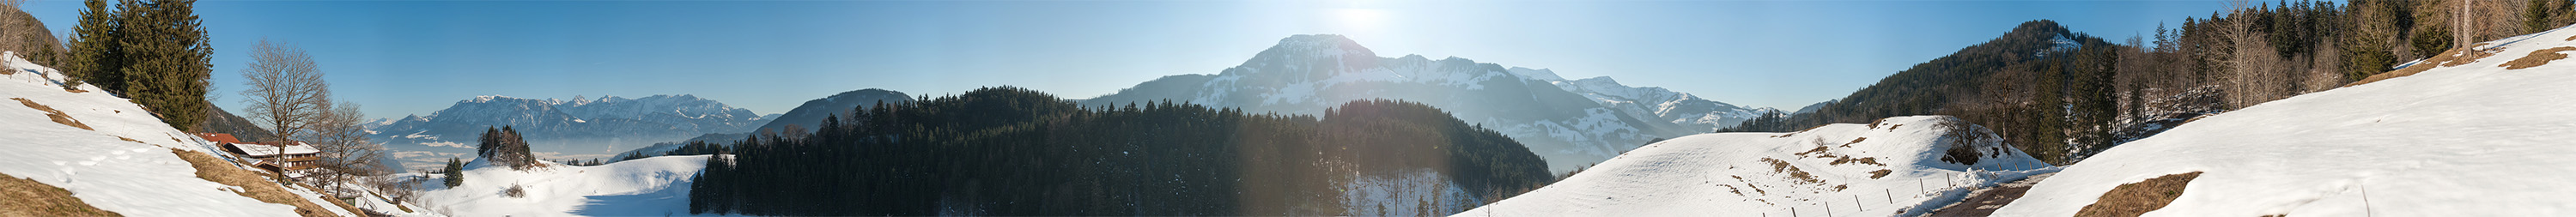 17.02.2015 - Am Berggasthof Bichlersee